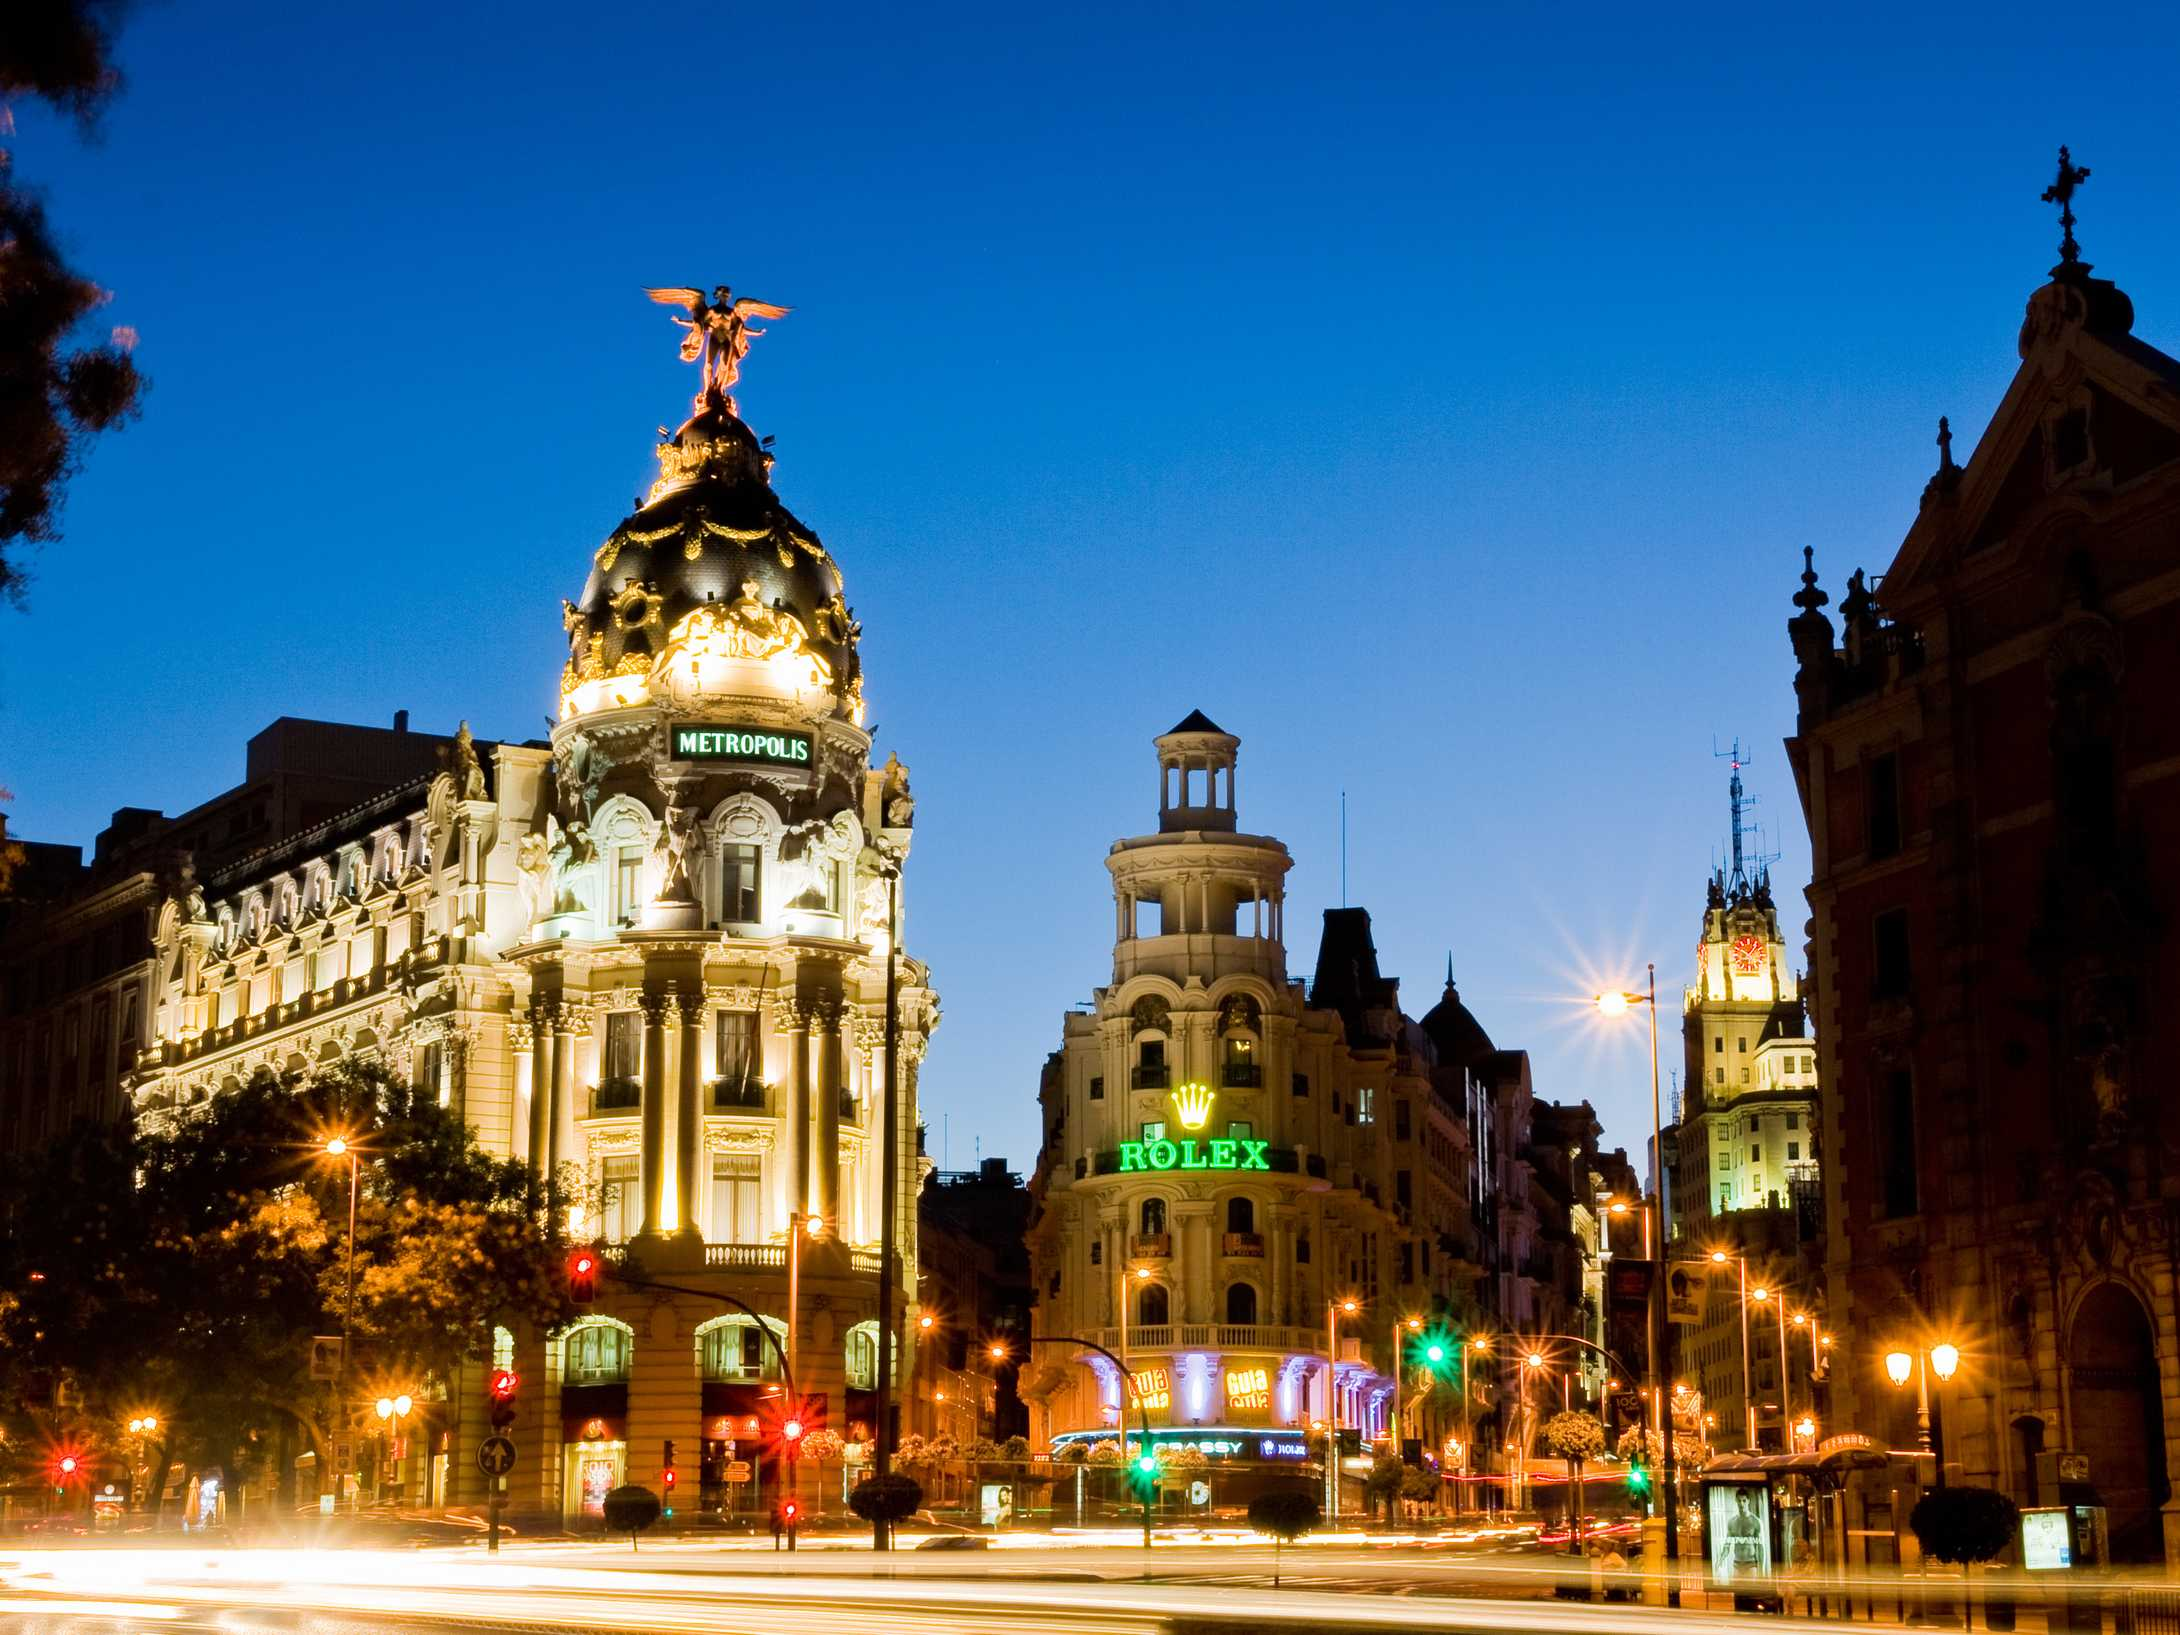 Hoteles boutique en el centro de madrid room mate hotels for Hoteles vanguardistas en madrid